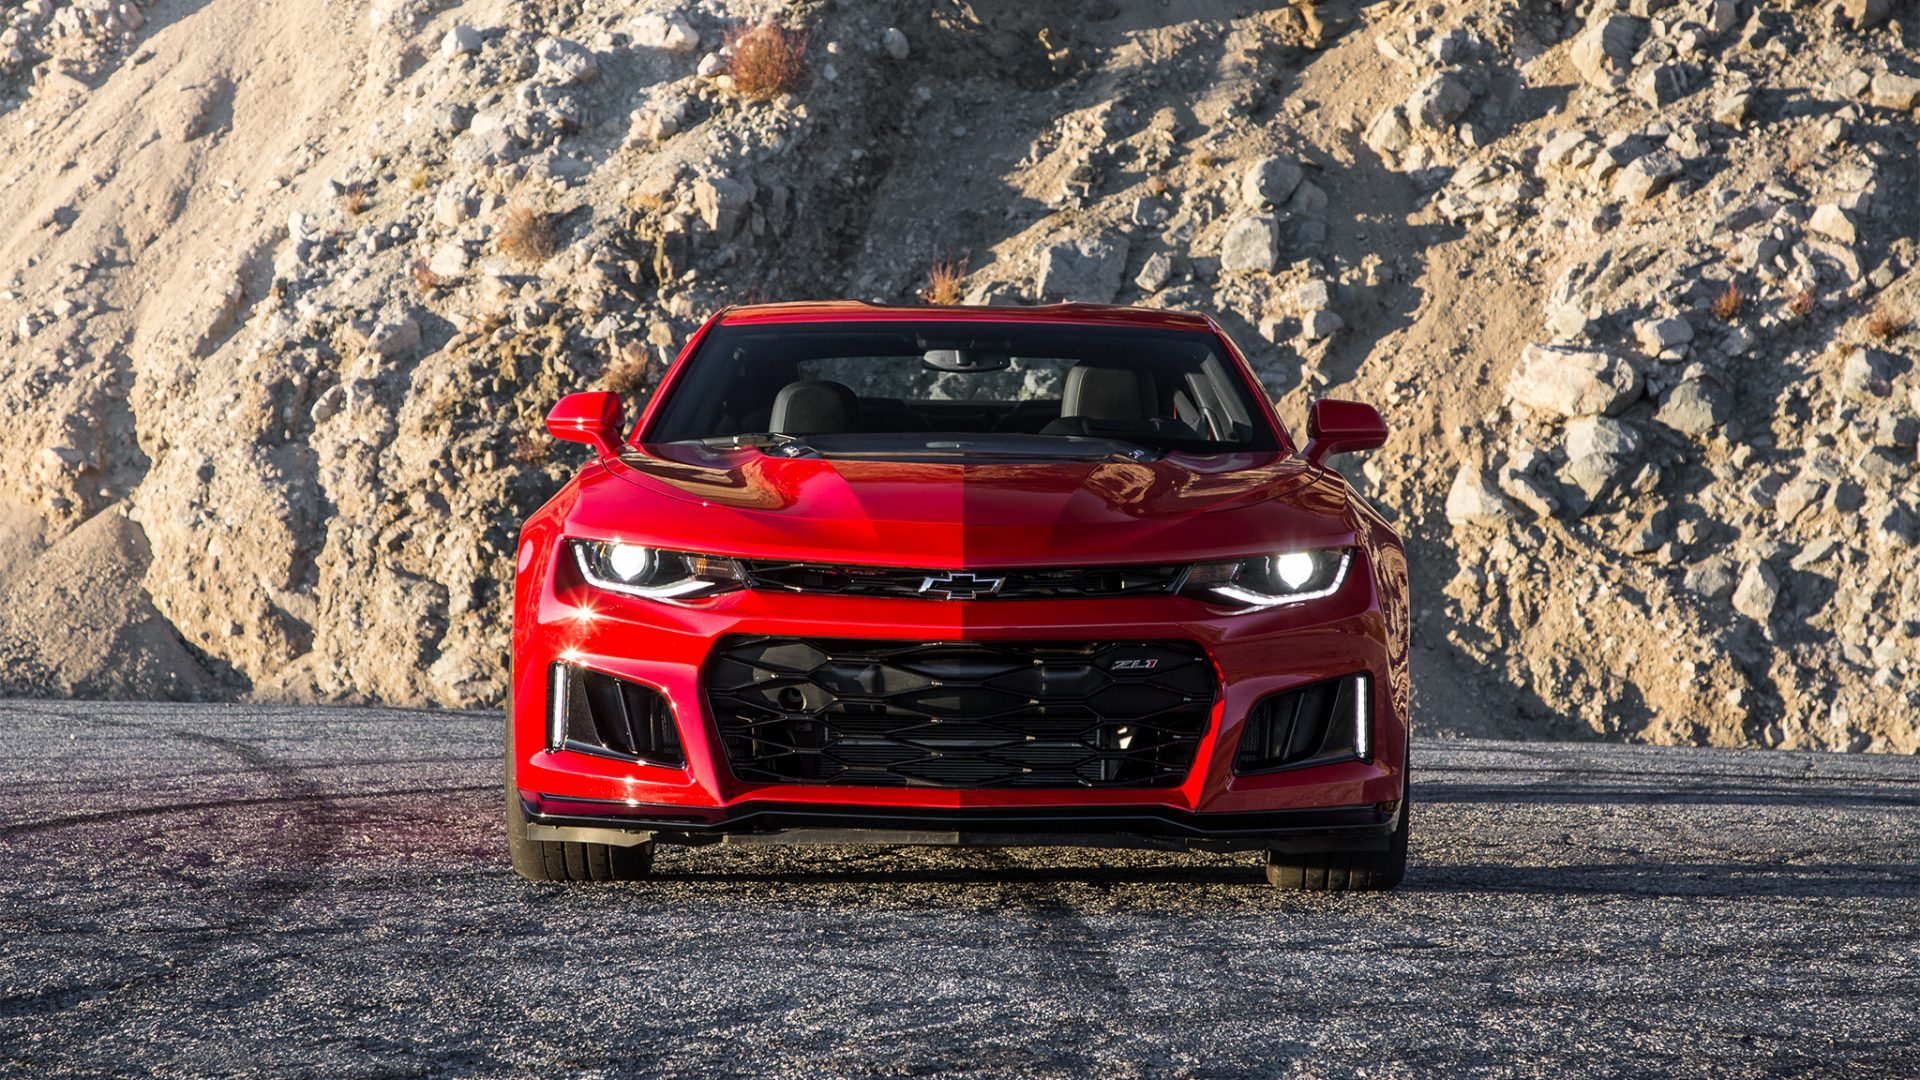 Car Wallpaper Smartphone 2017 Chevrolet Camaro Zl1 Red Wallpaper Hd Wallpaper